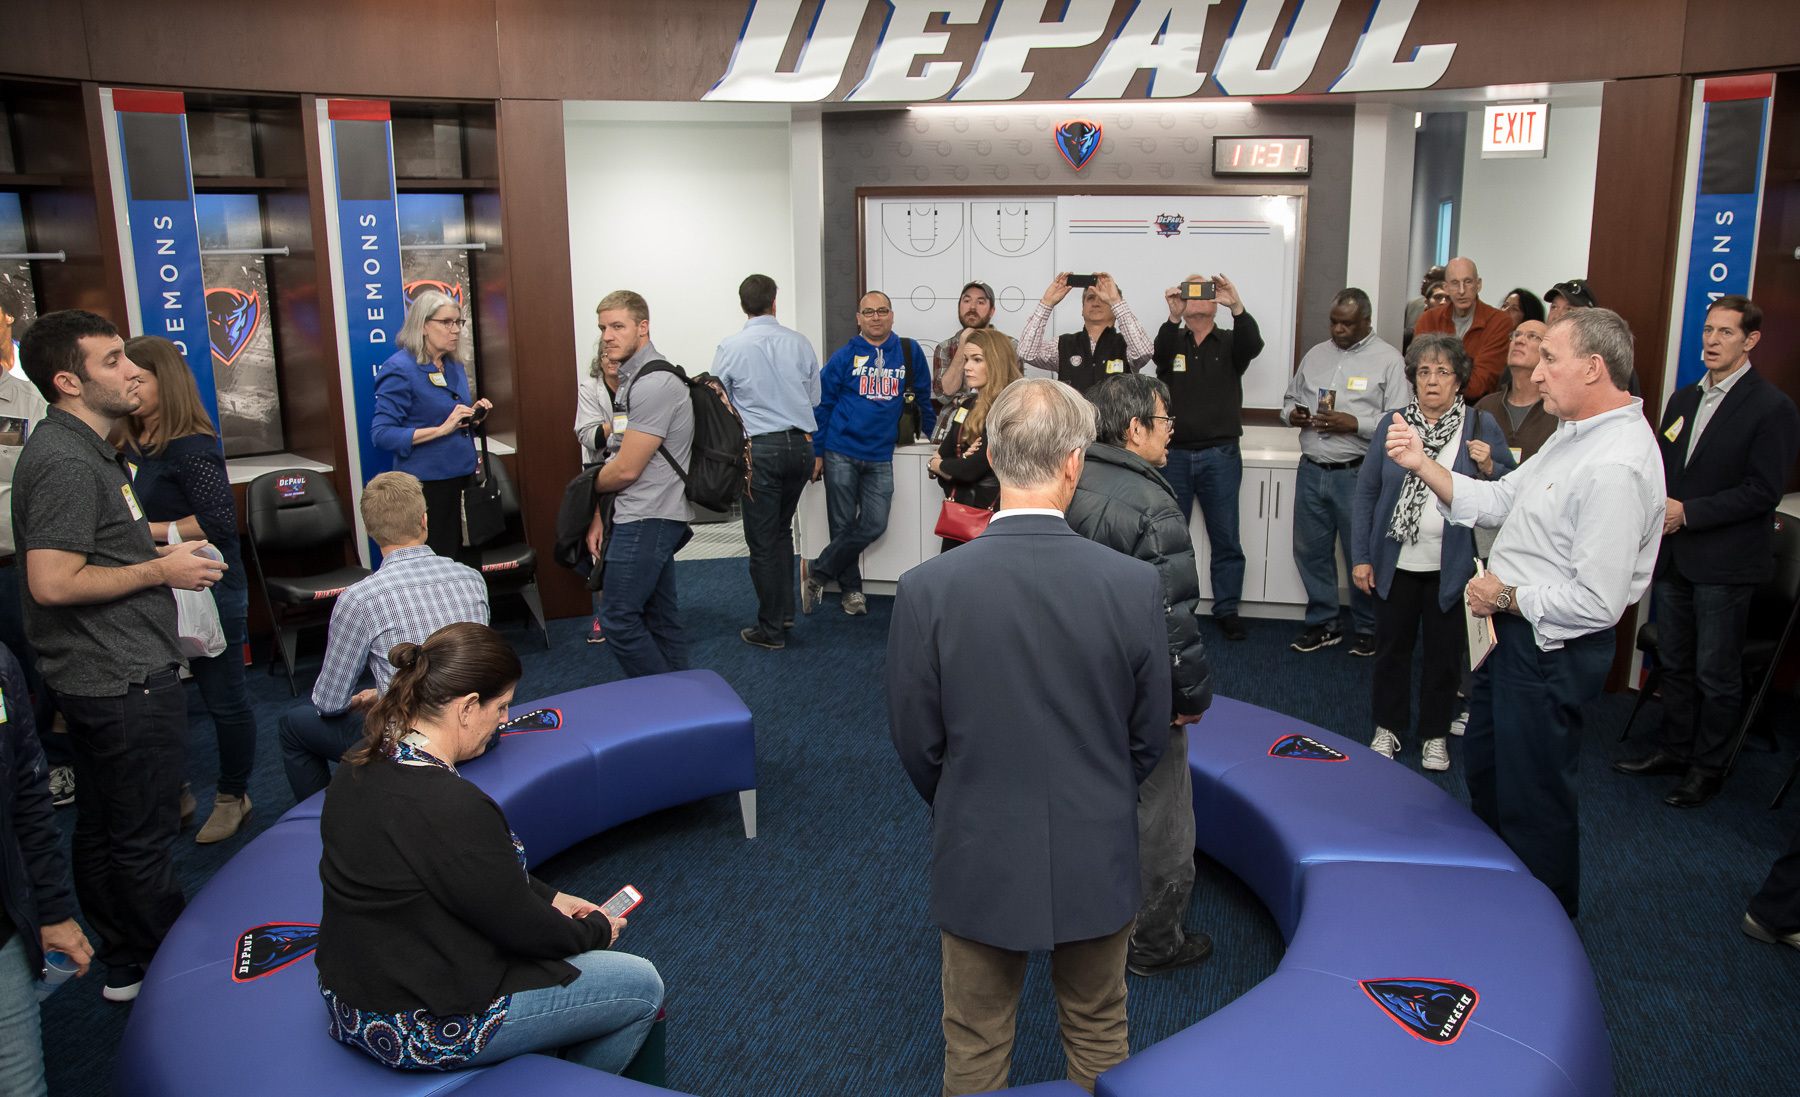 Attendees explore the women's basketball locker room during a sneak peek of Wintrust Arena, the new home of the DePaul Blue Demons basketball. (DePaul University/Jeff Carrion)